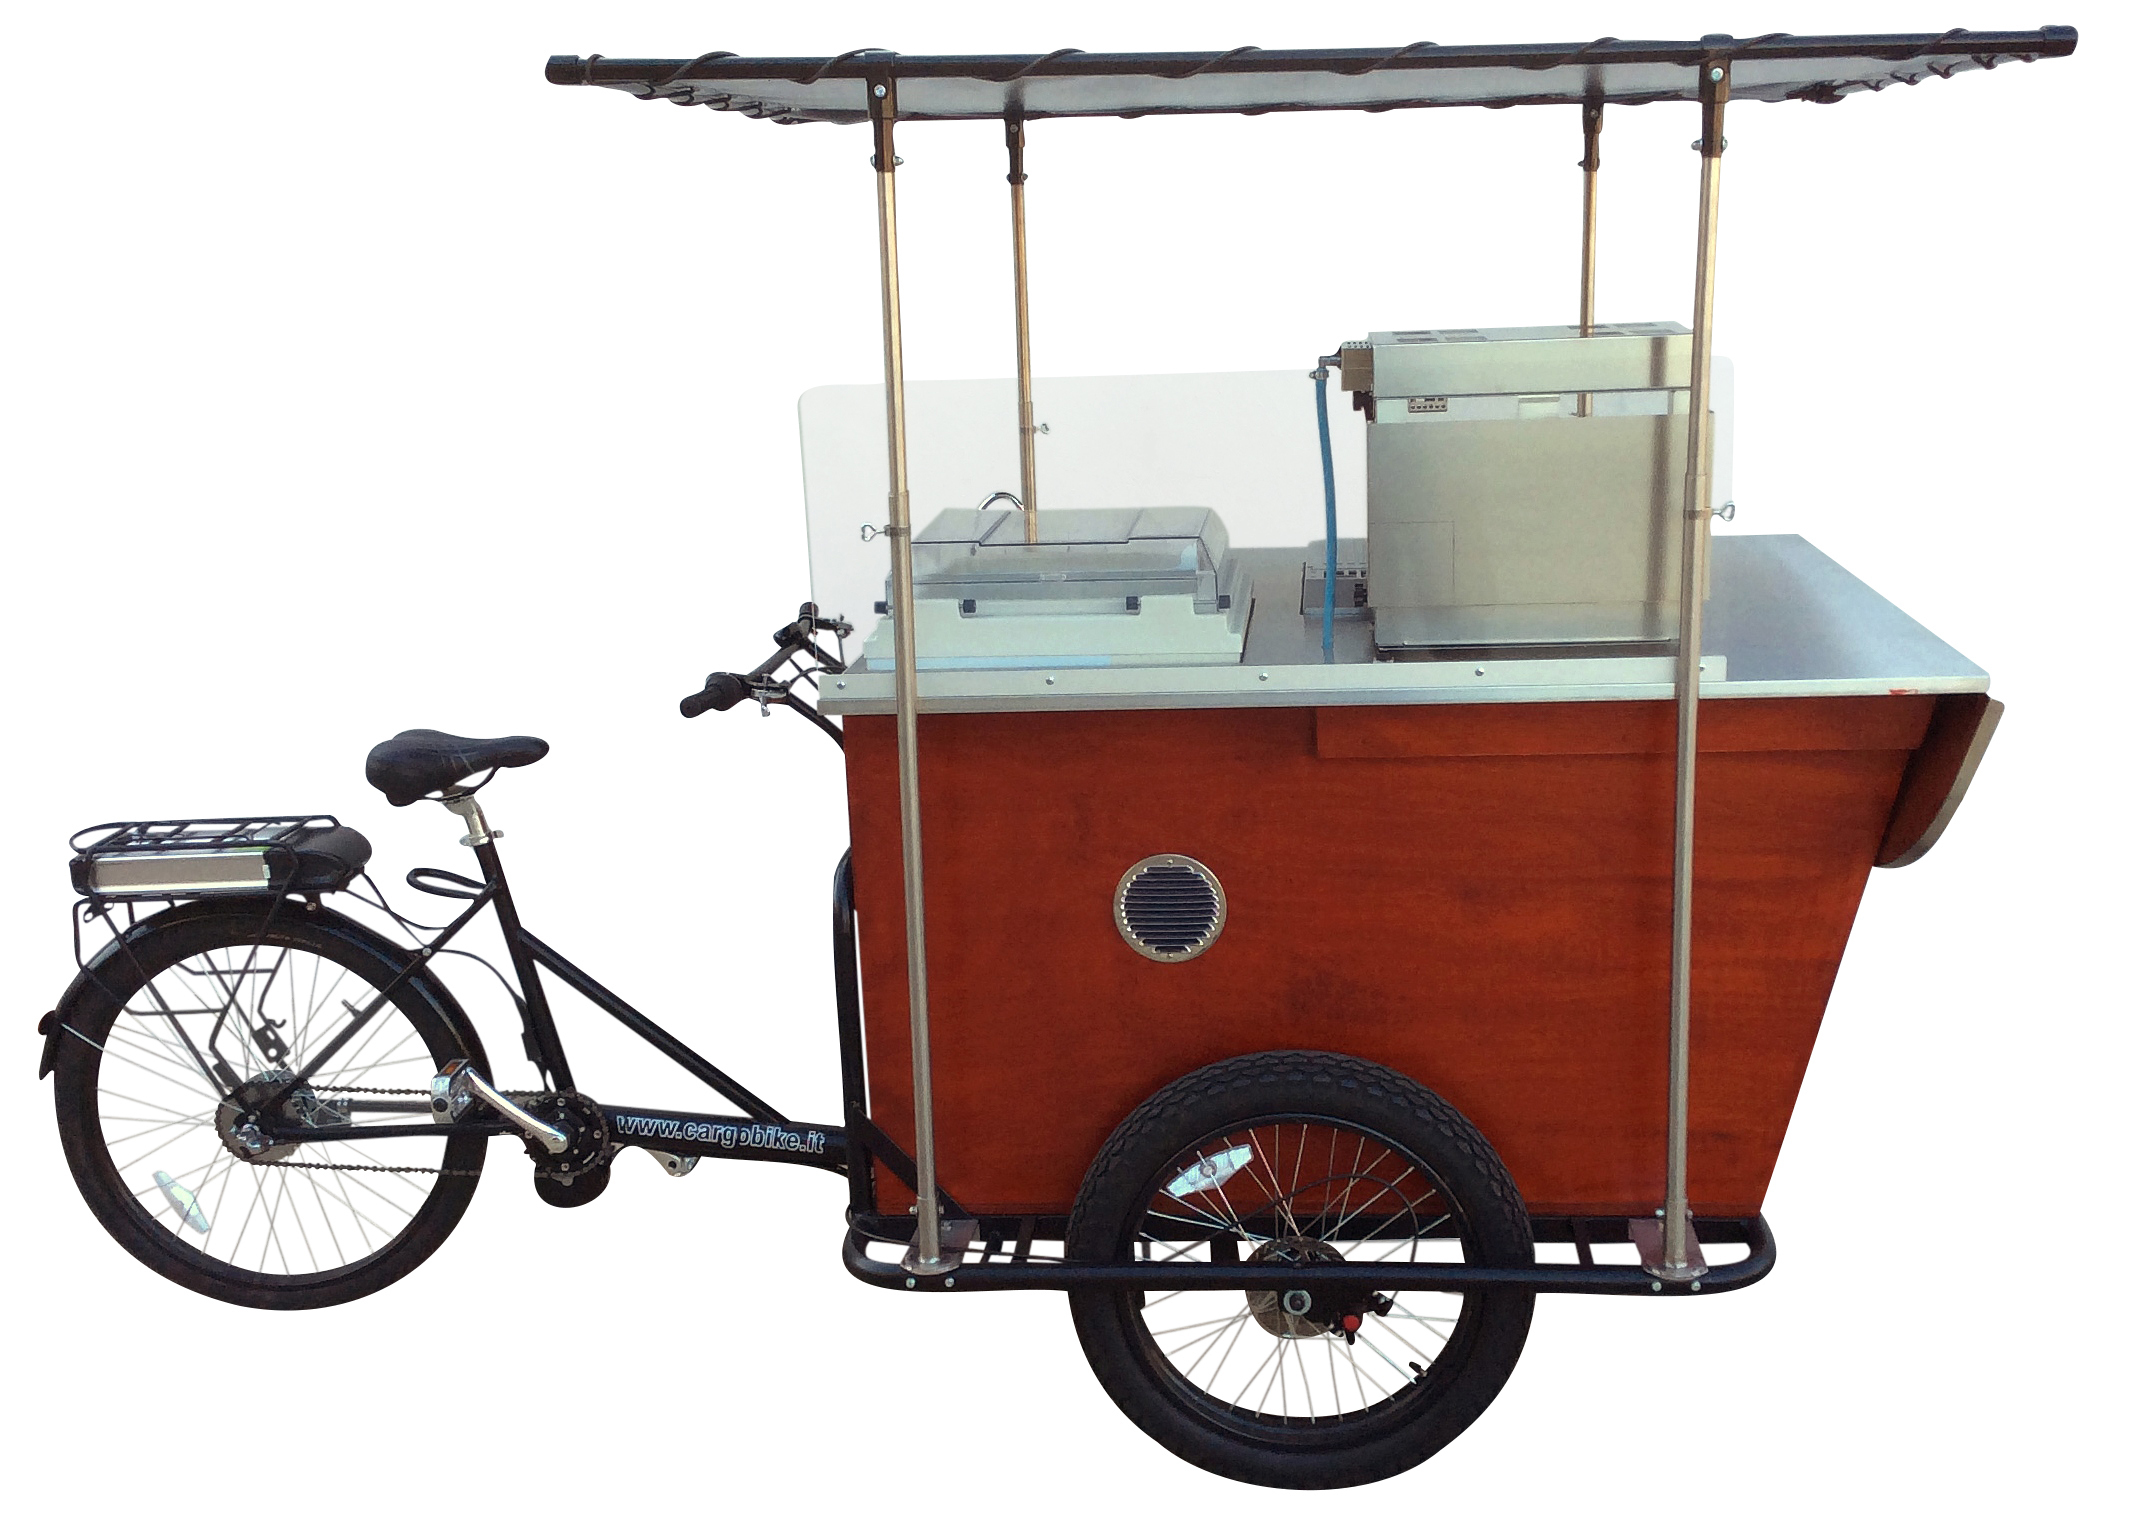 TRICYCLE_STREET_FOOD_CART_SANDWICHES_CARGO_BIKE_WOOD_7